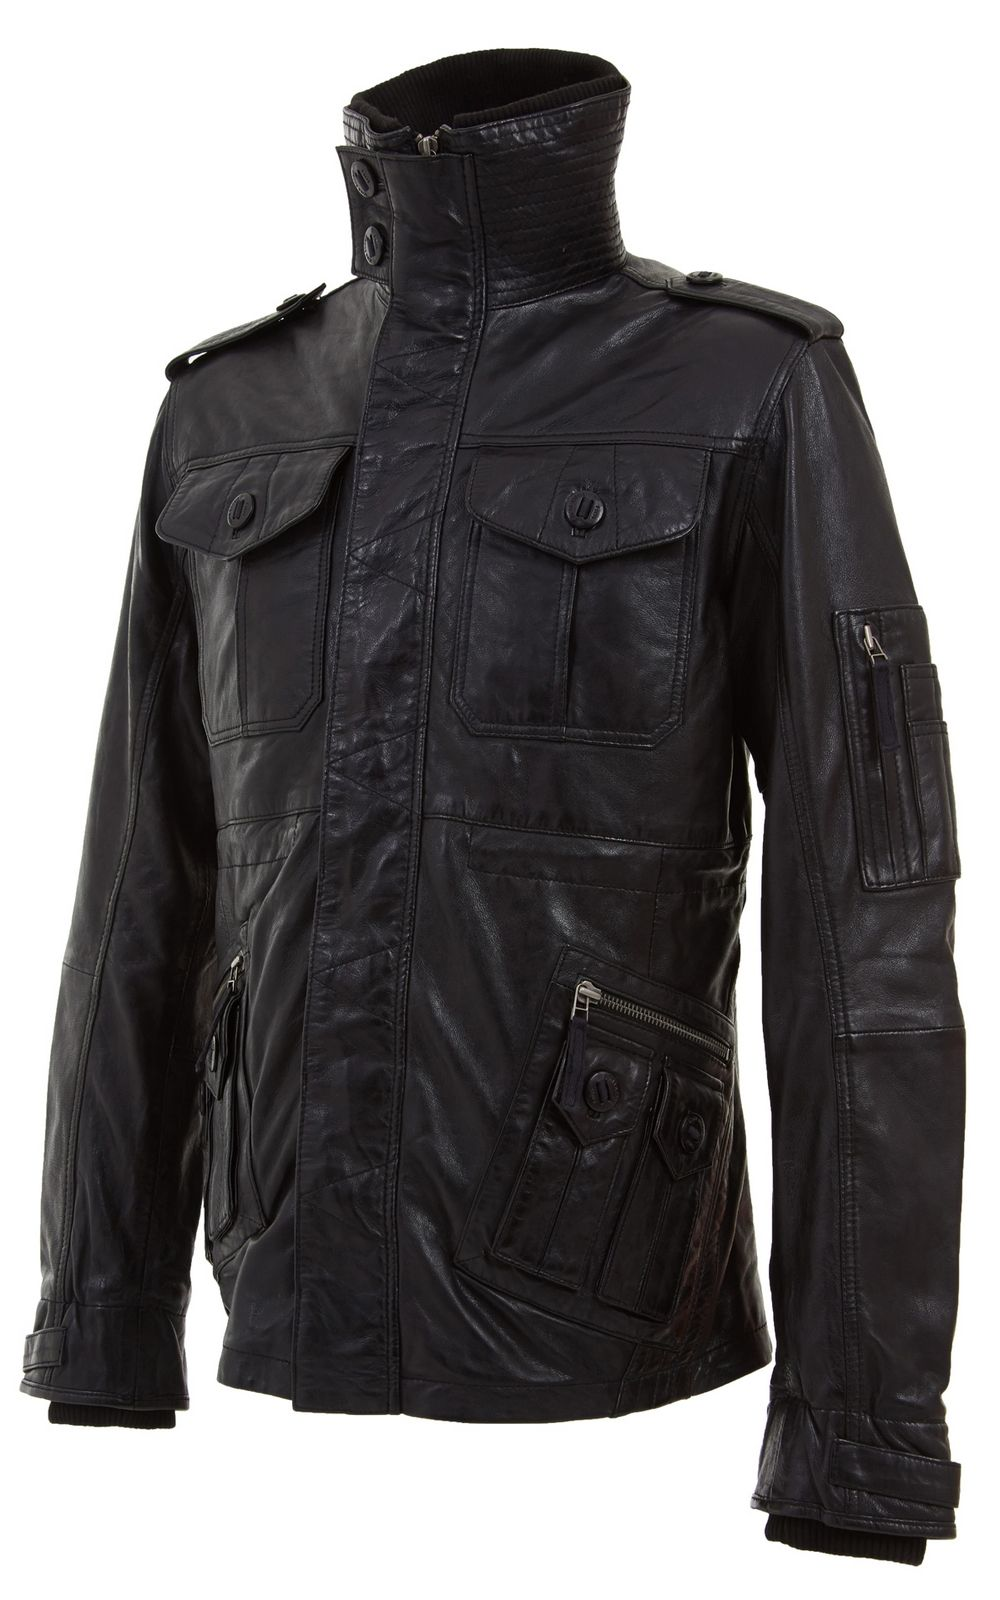 Mens Retro Black Leather Biker Jacket In Sizes S To 5xl The Leather Funnel Neck Can Be Opene Black Leather Biker Jacket Leather Jacket Men Mens Leather Coats [ 1600 x 1000 Pixel ]